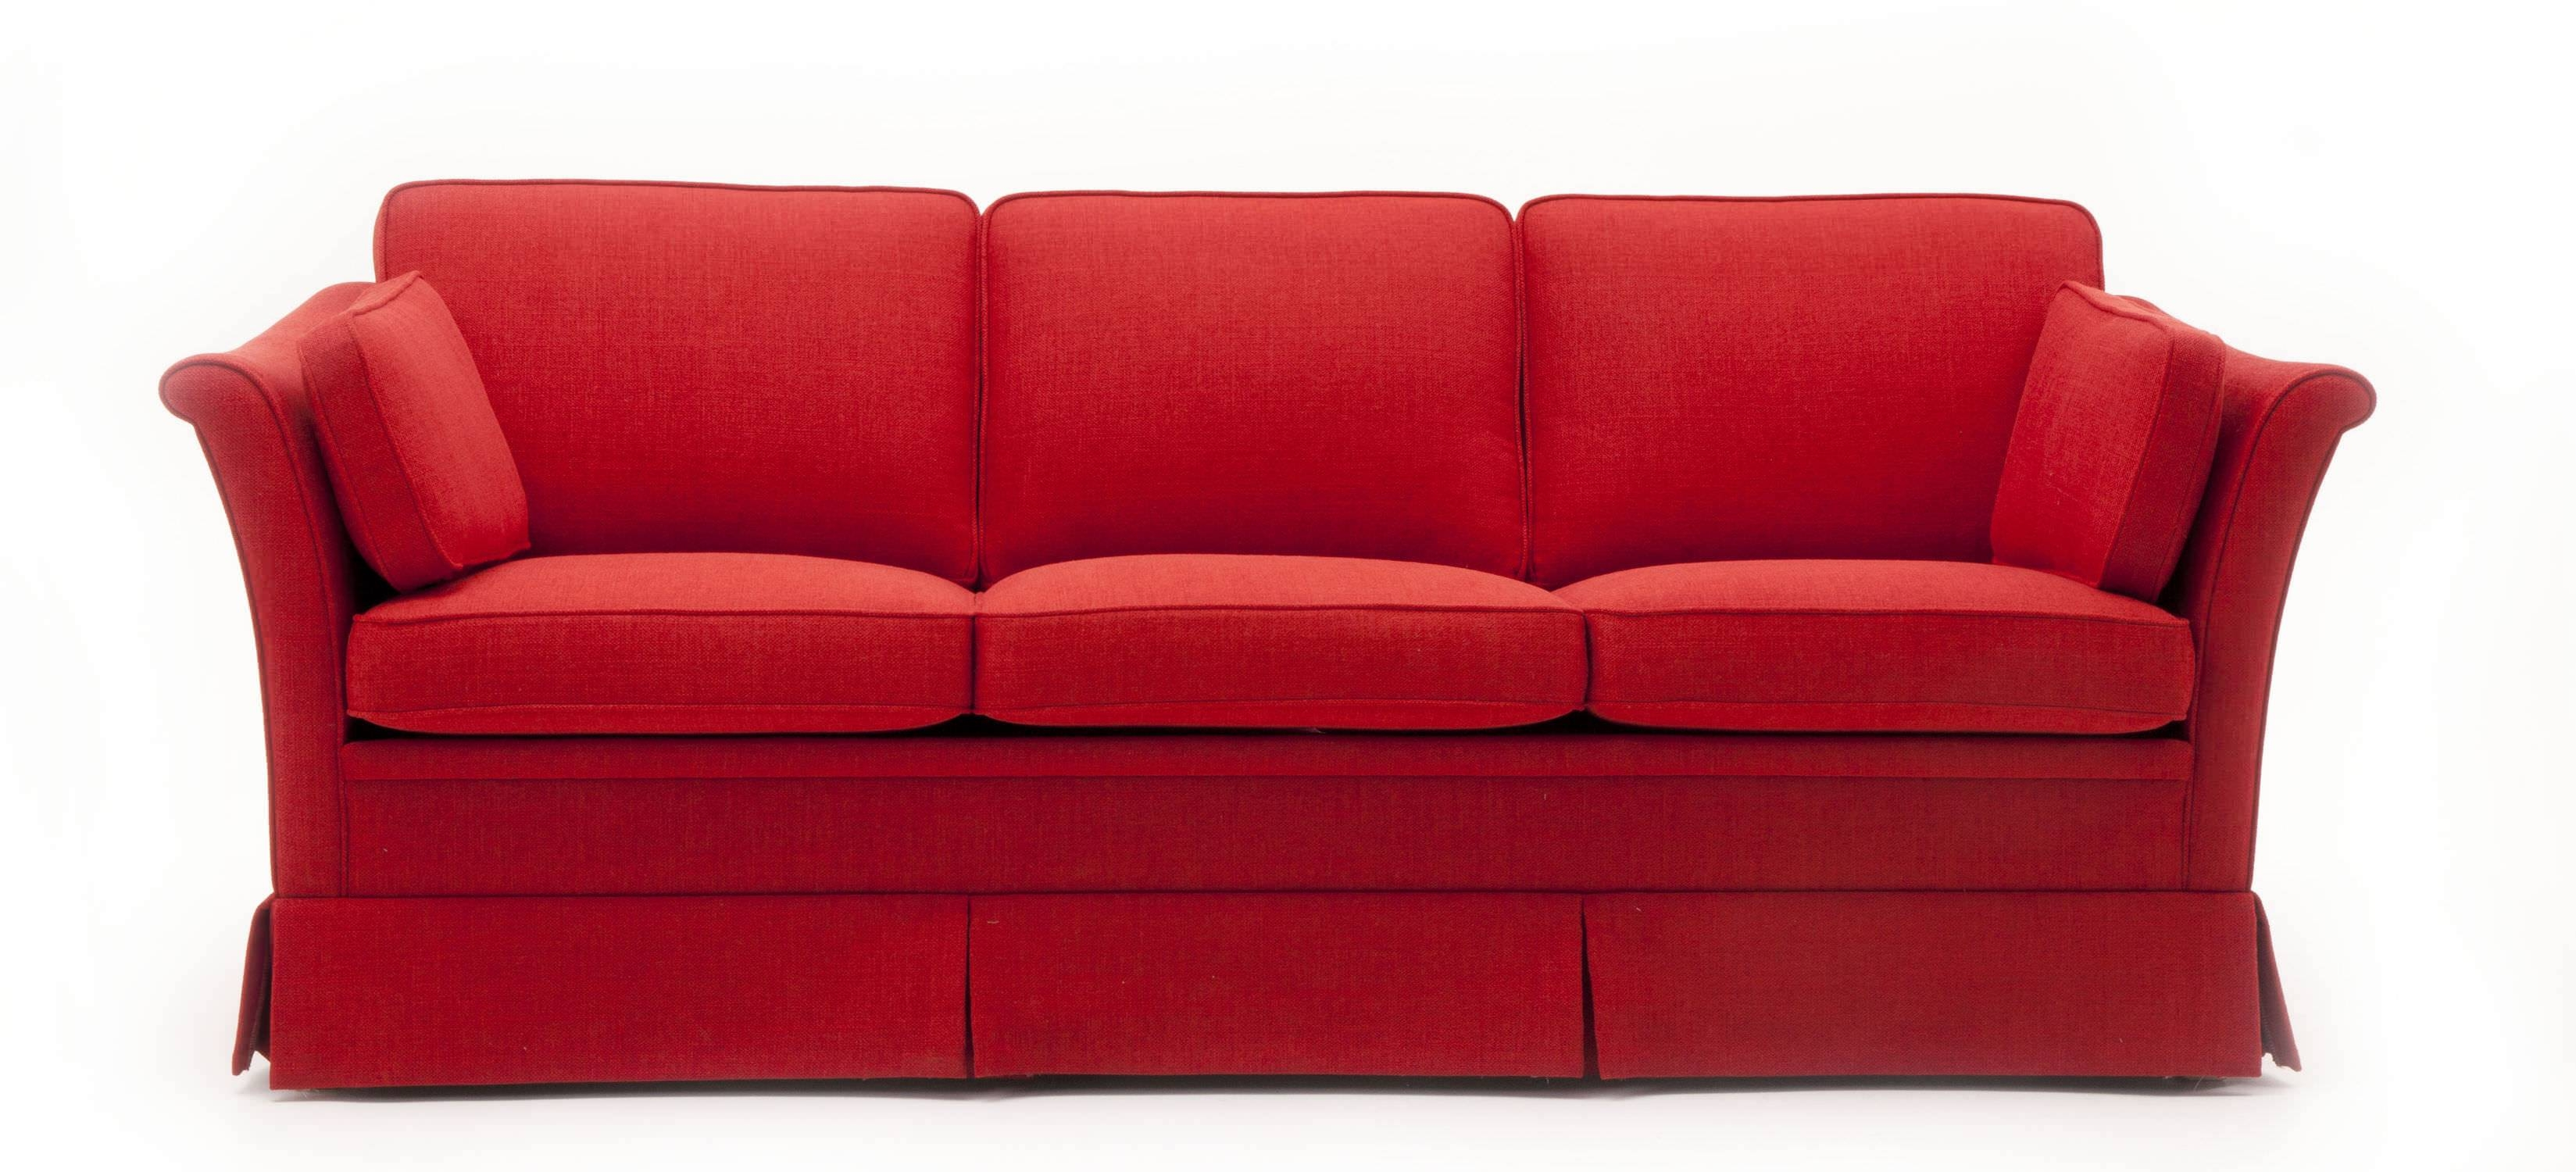 Best 30 Of Sofas With Removable Covers